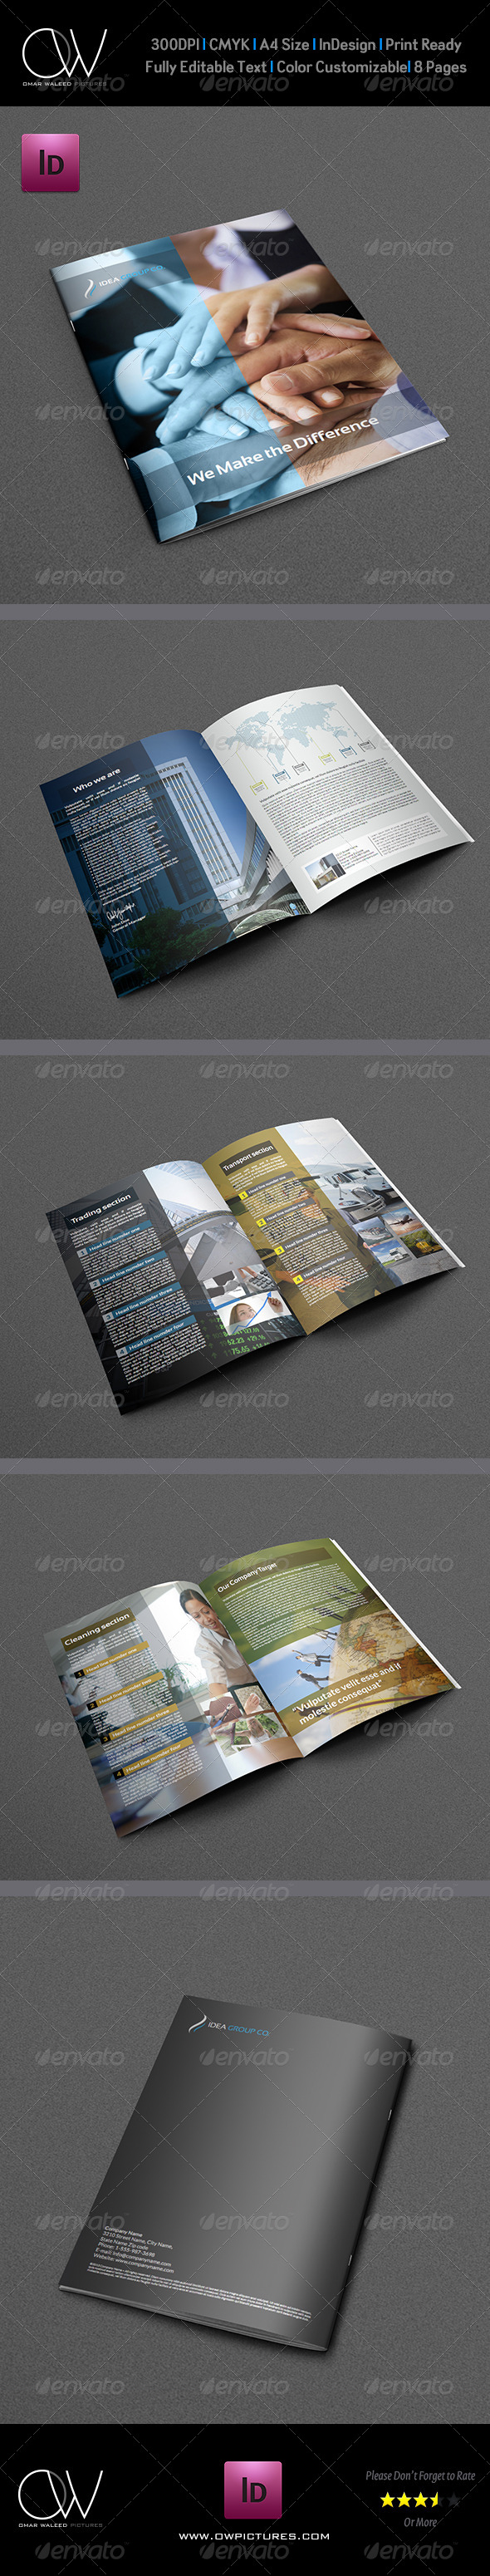 Company Brochure Template Vol.8 - 8 Pages - Brochures Print Templates